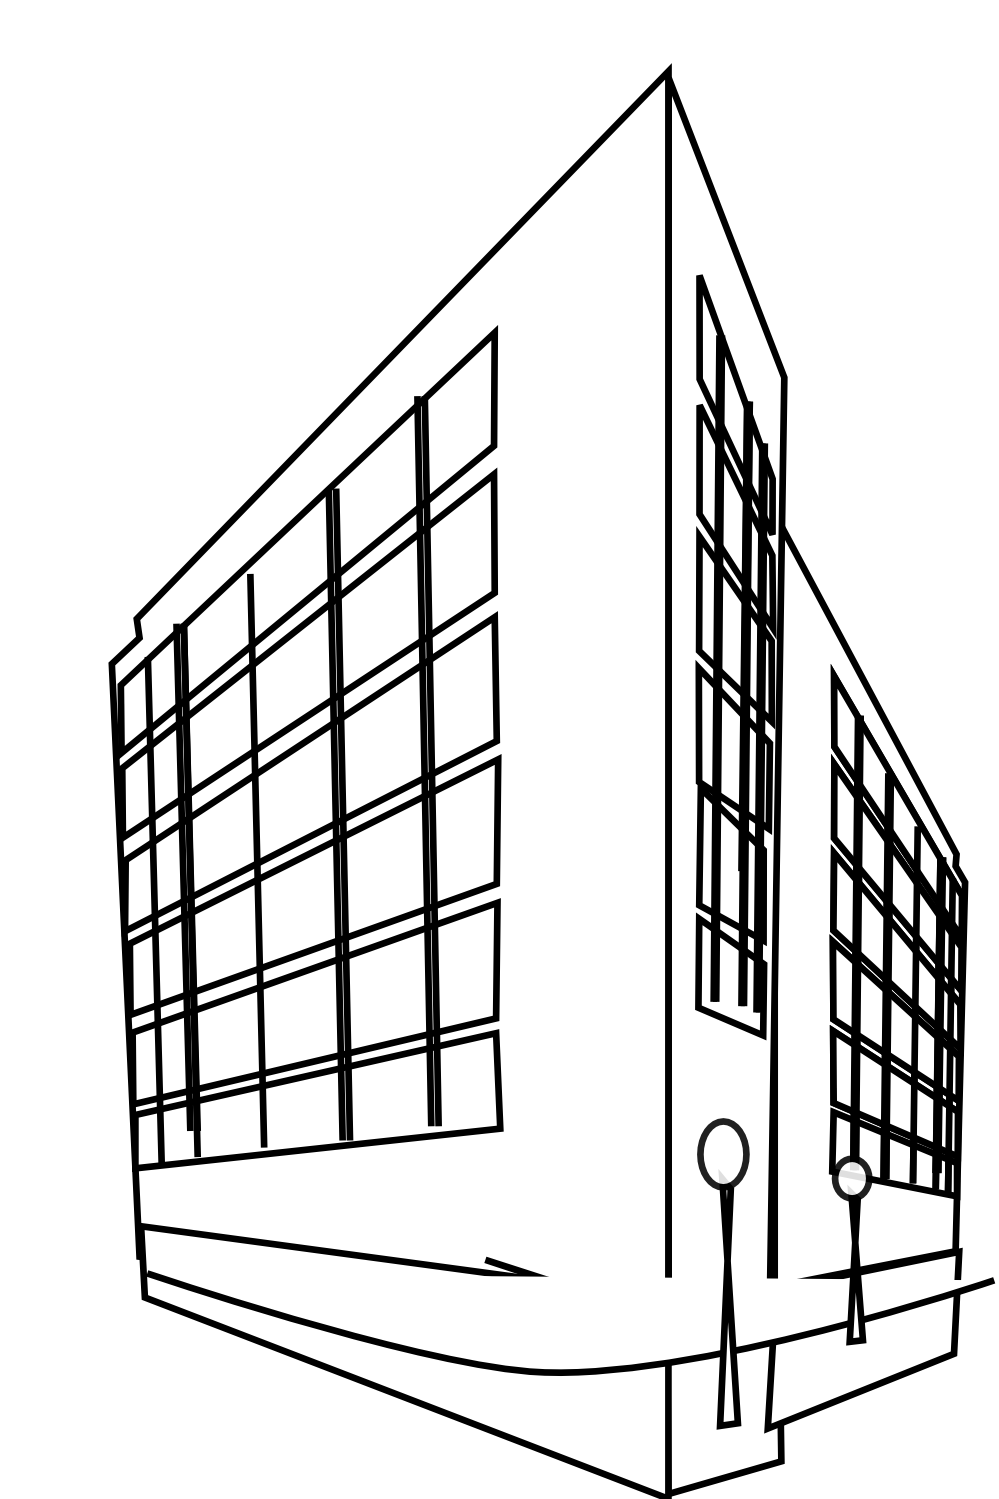 Building Clipart Black And White | Clipart Panda - Free ...